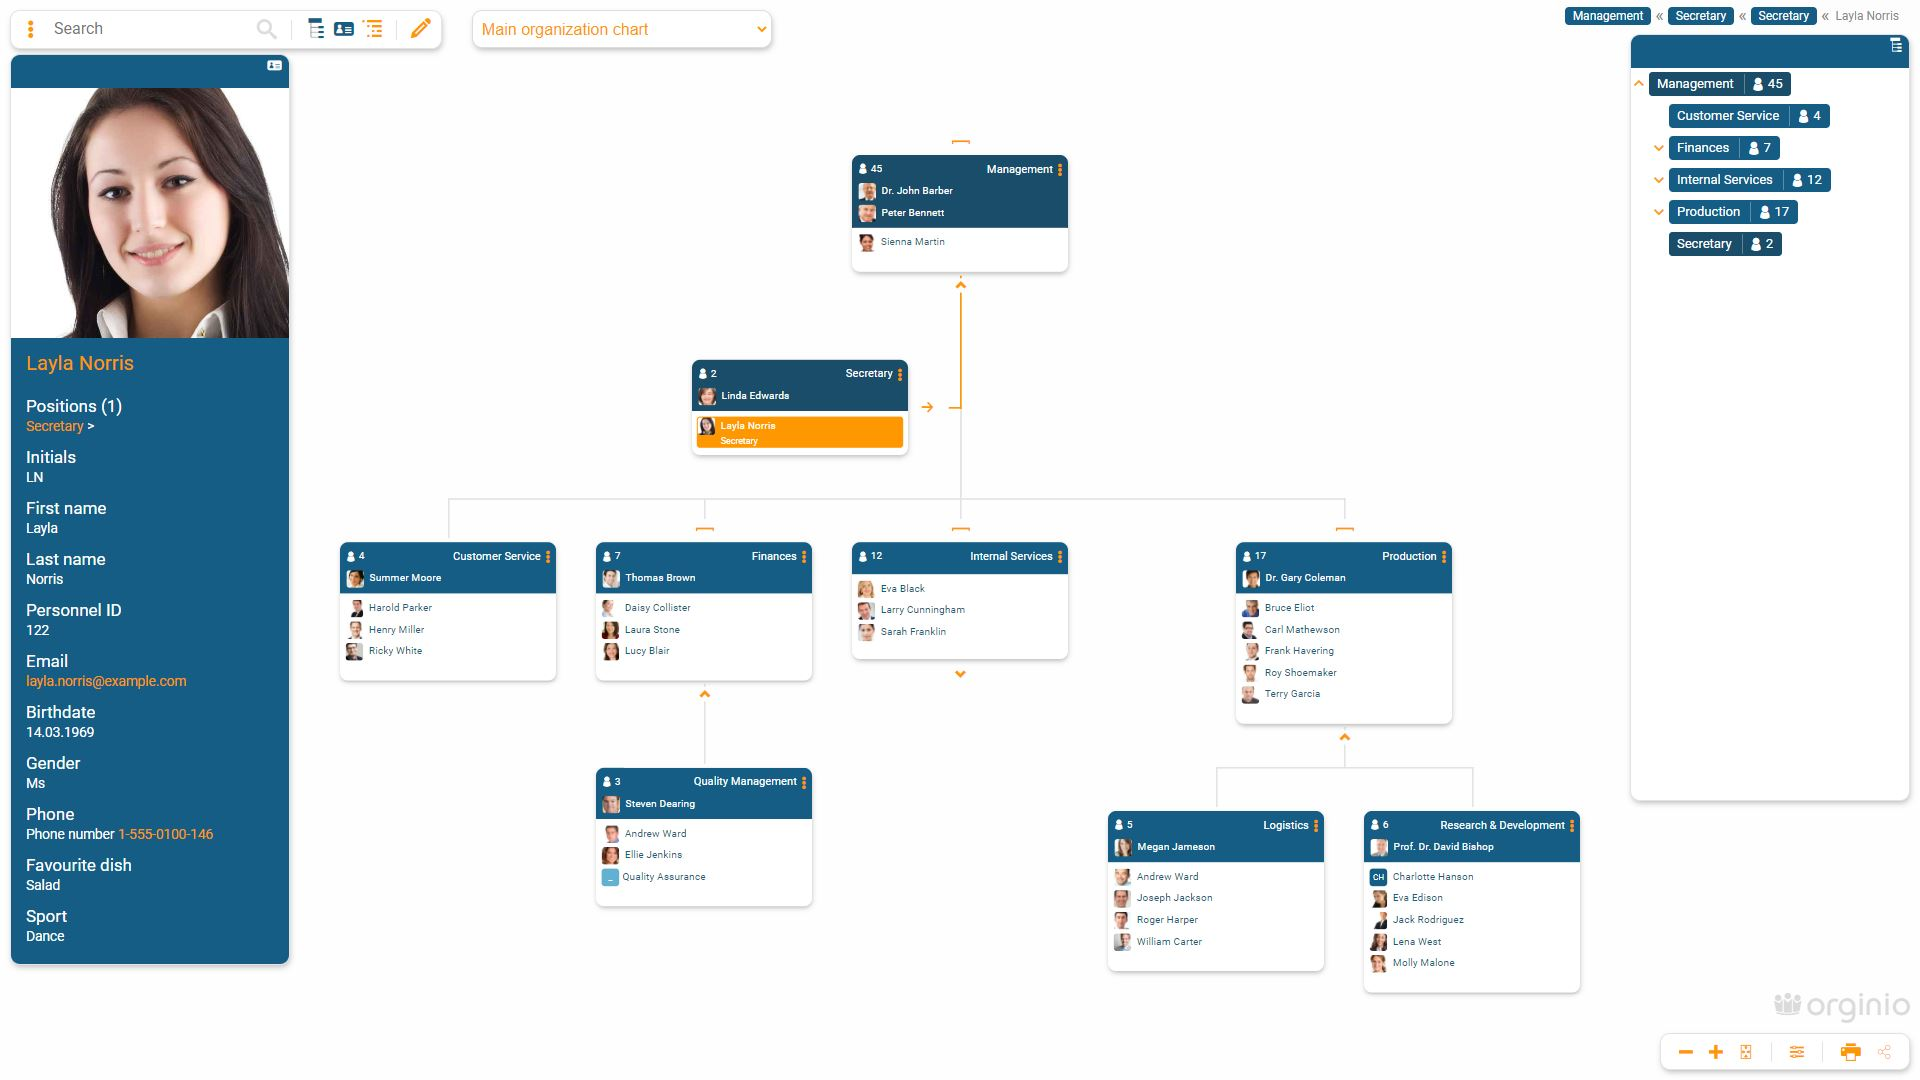 Create your online org chart within minutes with orginio.